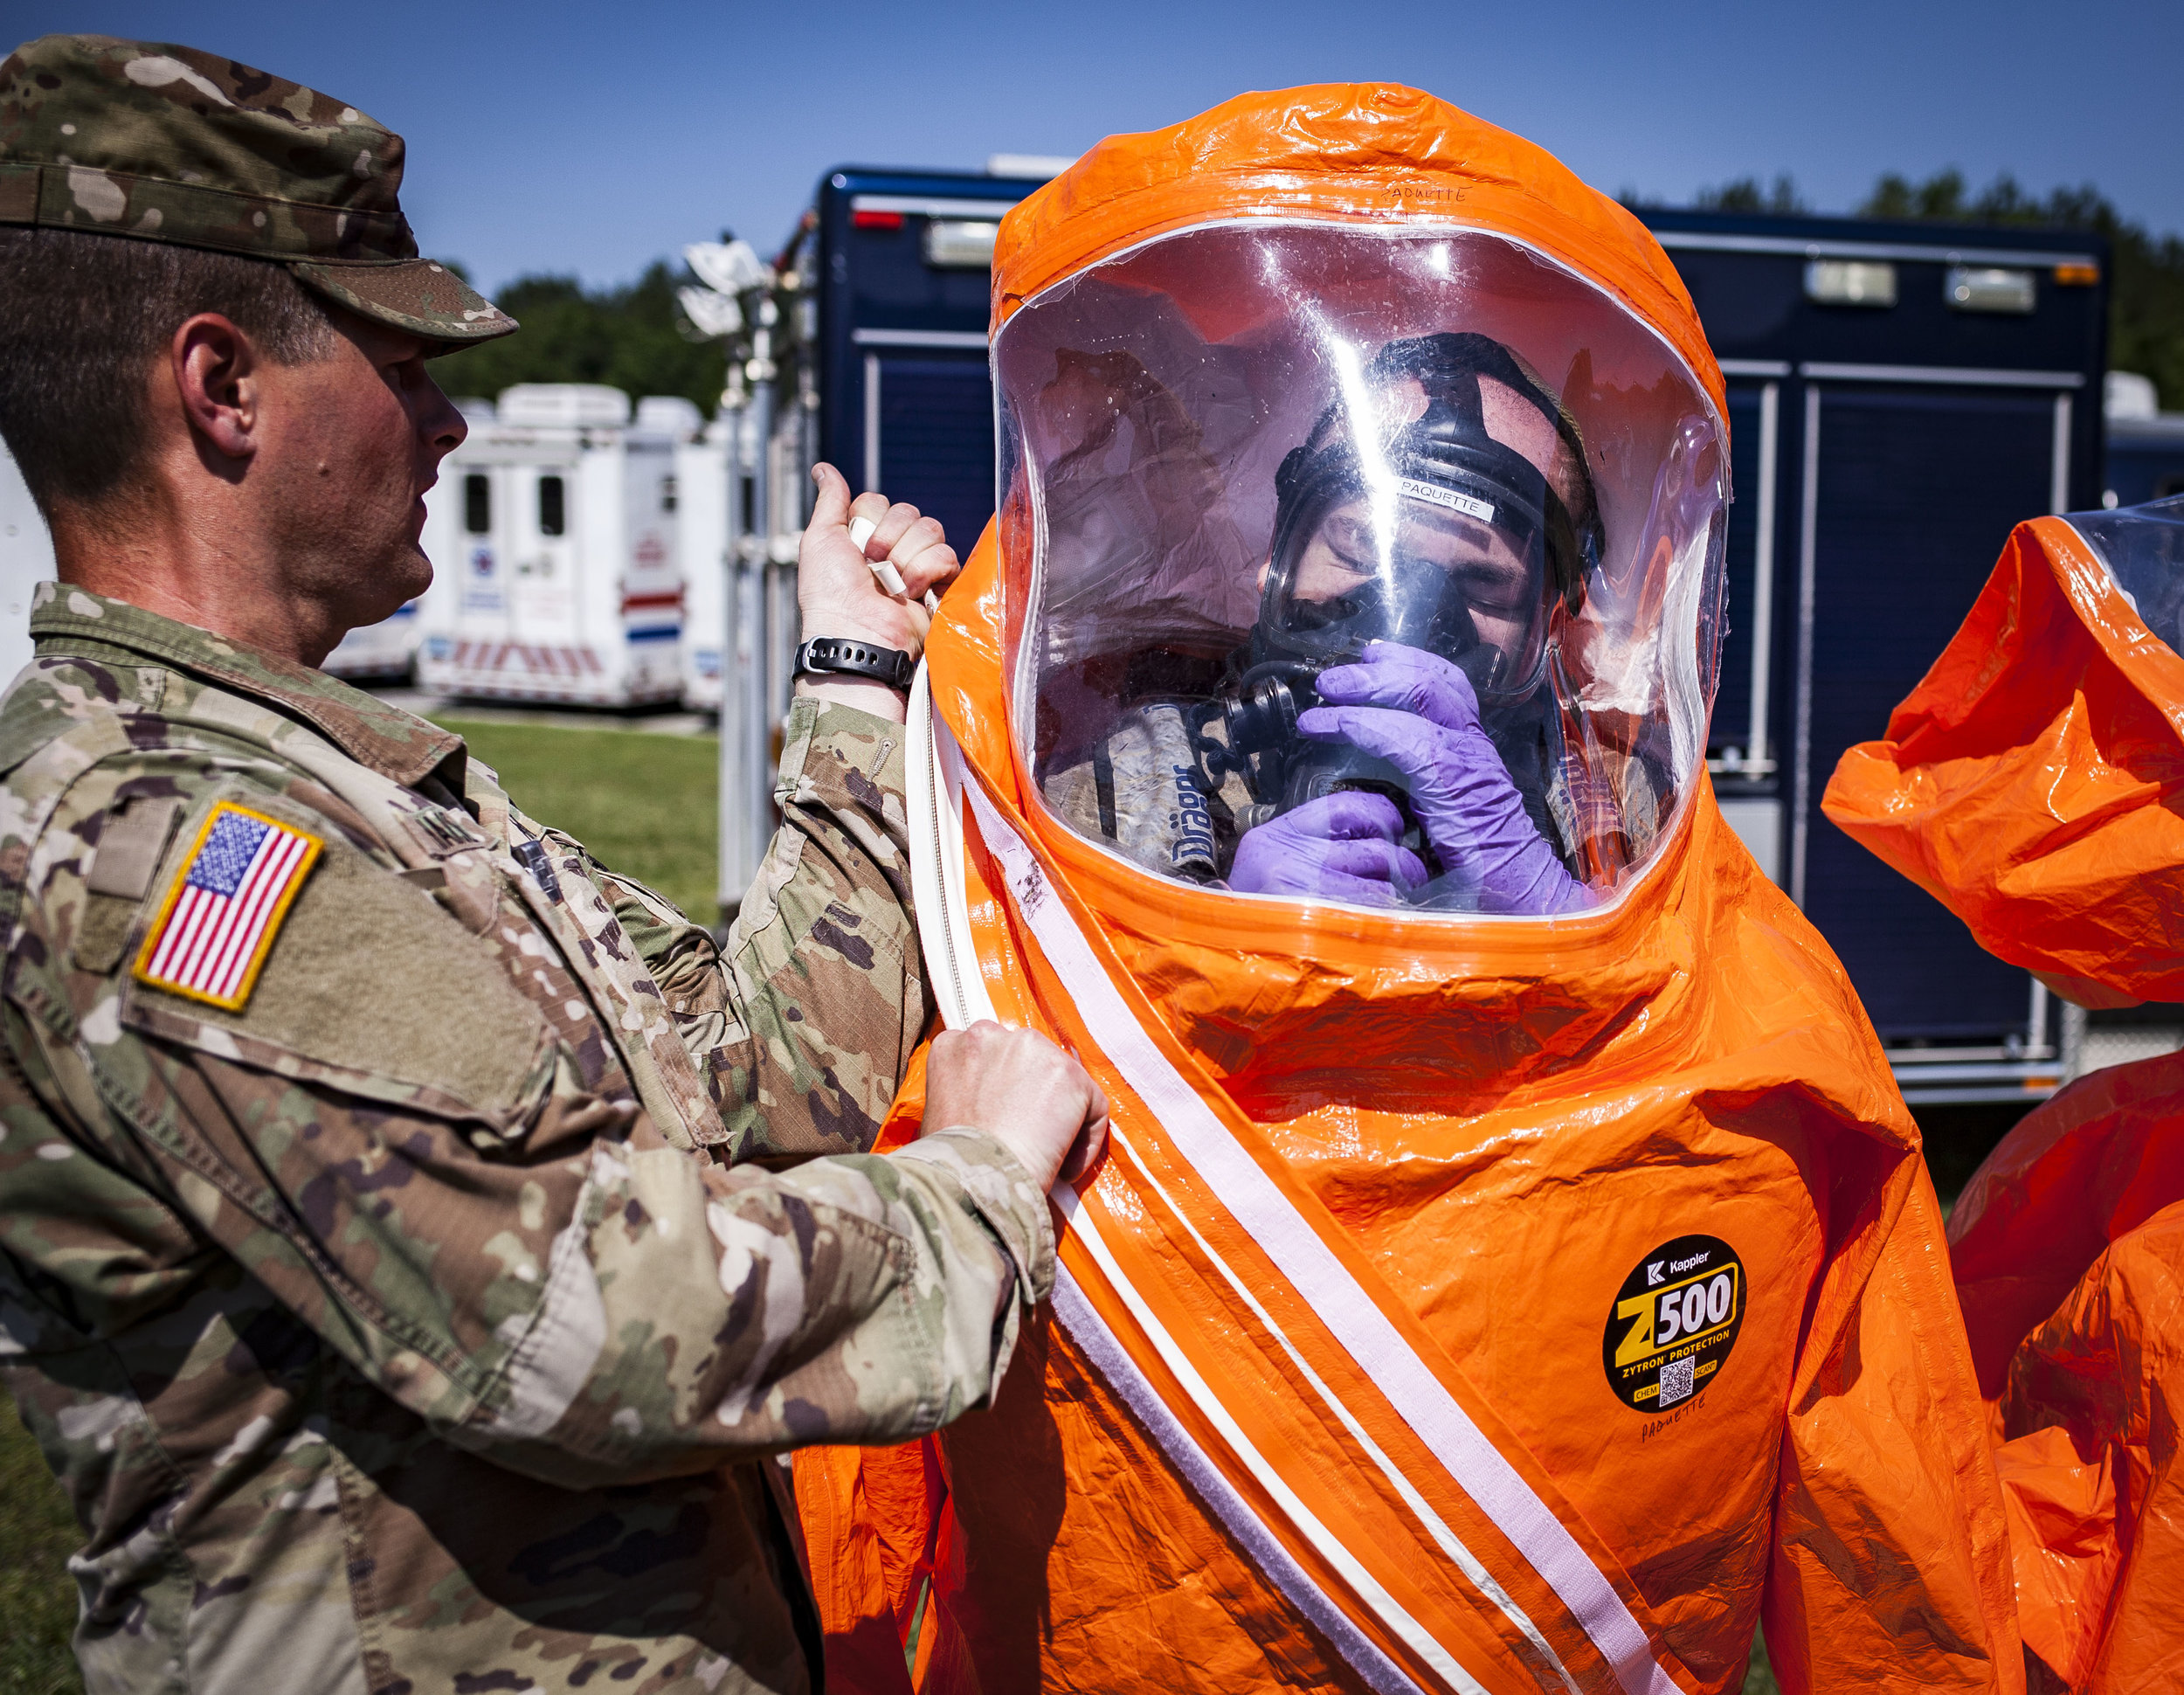 Stg. 1st Class David Paquette of the Virginia National Guard's Fort Pickett-based 34th Civil Support Team, straps on his boots and hazmat suit for the second day of the two day Training Proficiency Evaluation, Thursday, May 24, Richmond, VA. The training is to check the unit's level of readiness to assist firstresponders in potential biological chemical, nuclear, radiological and explosive incidents. Photos for Richmond Times-Dispatch